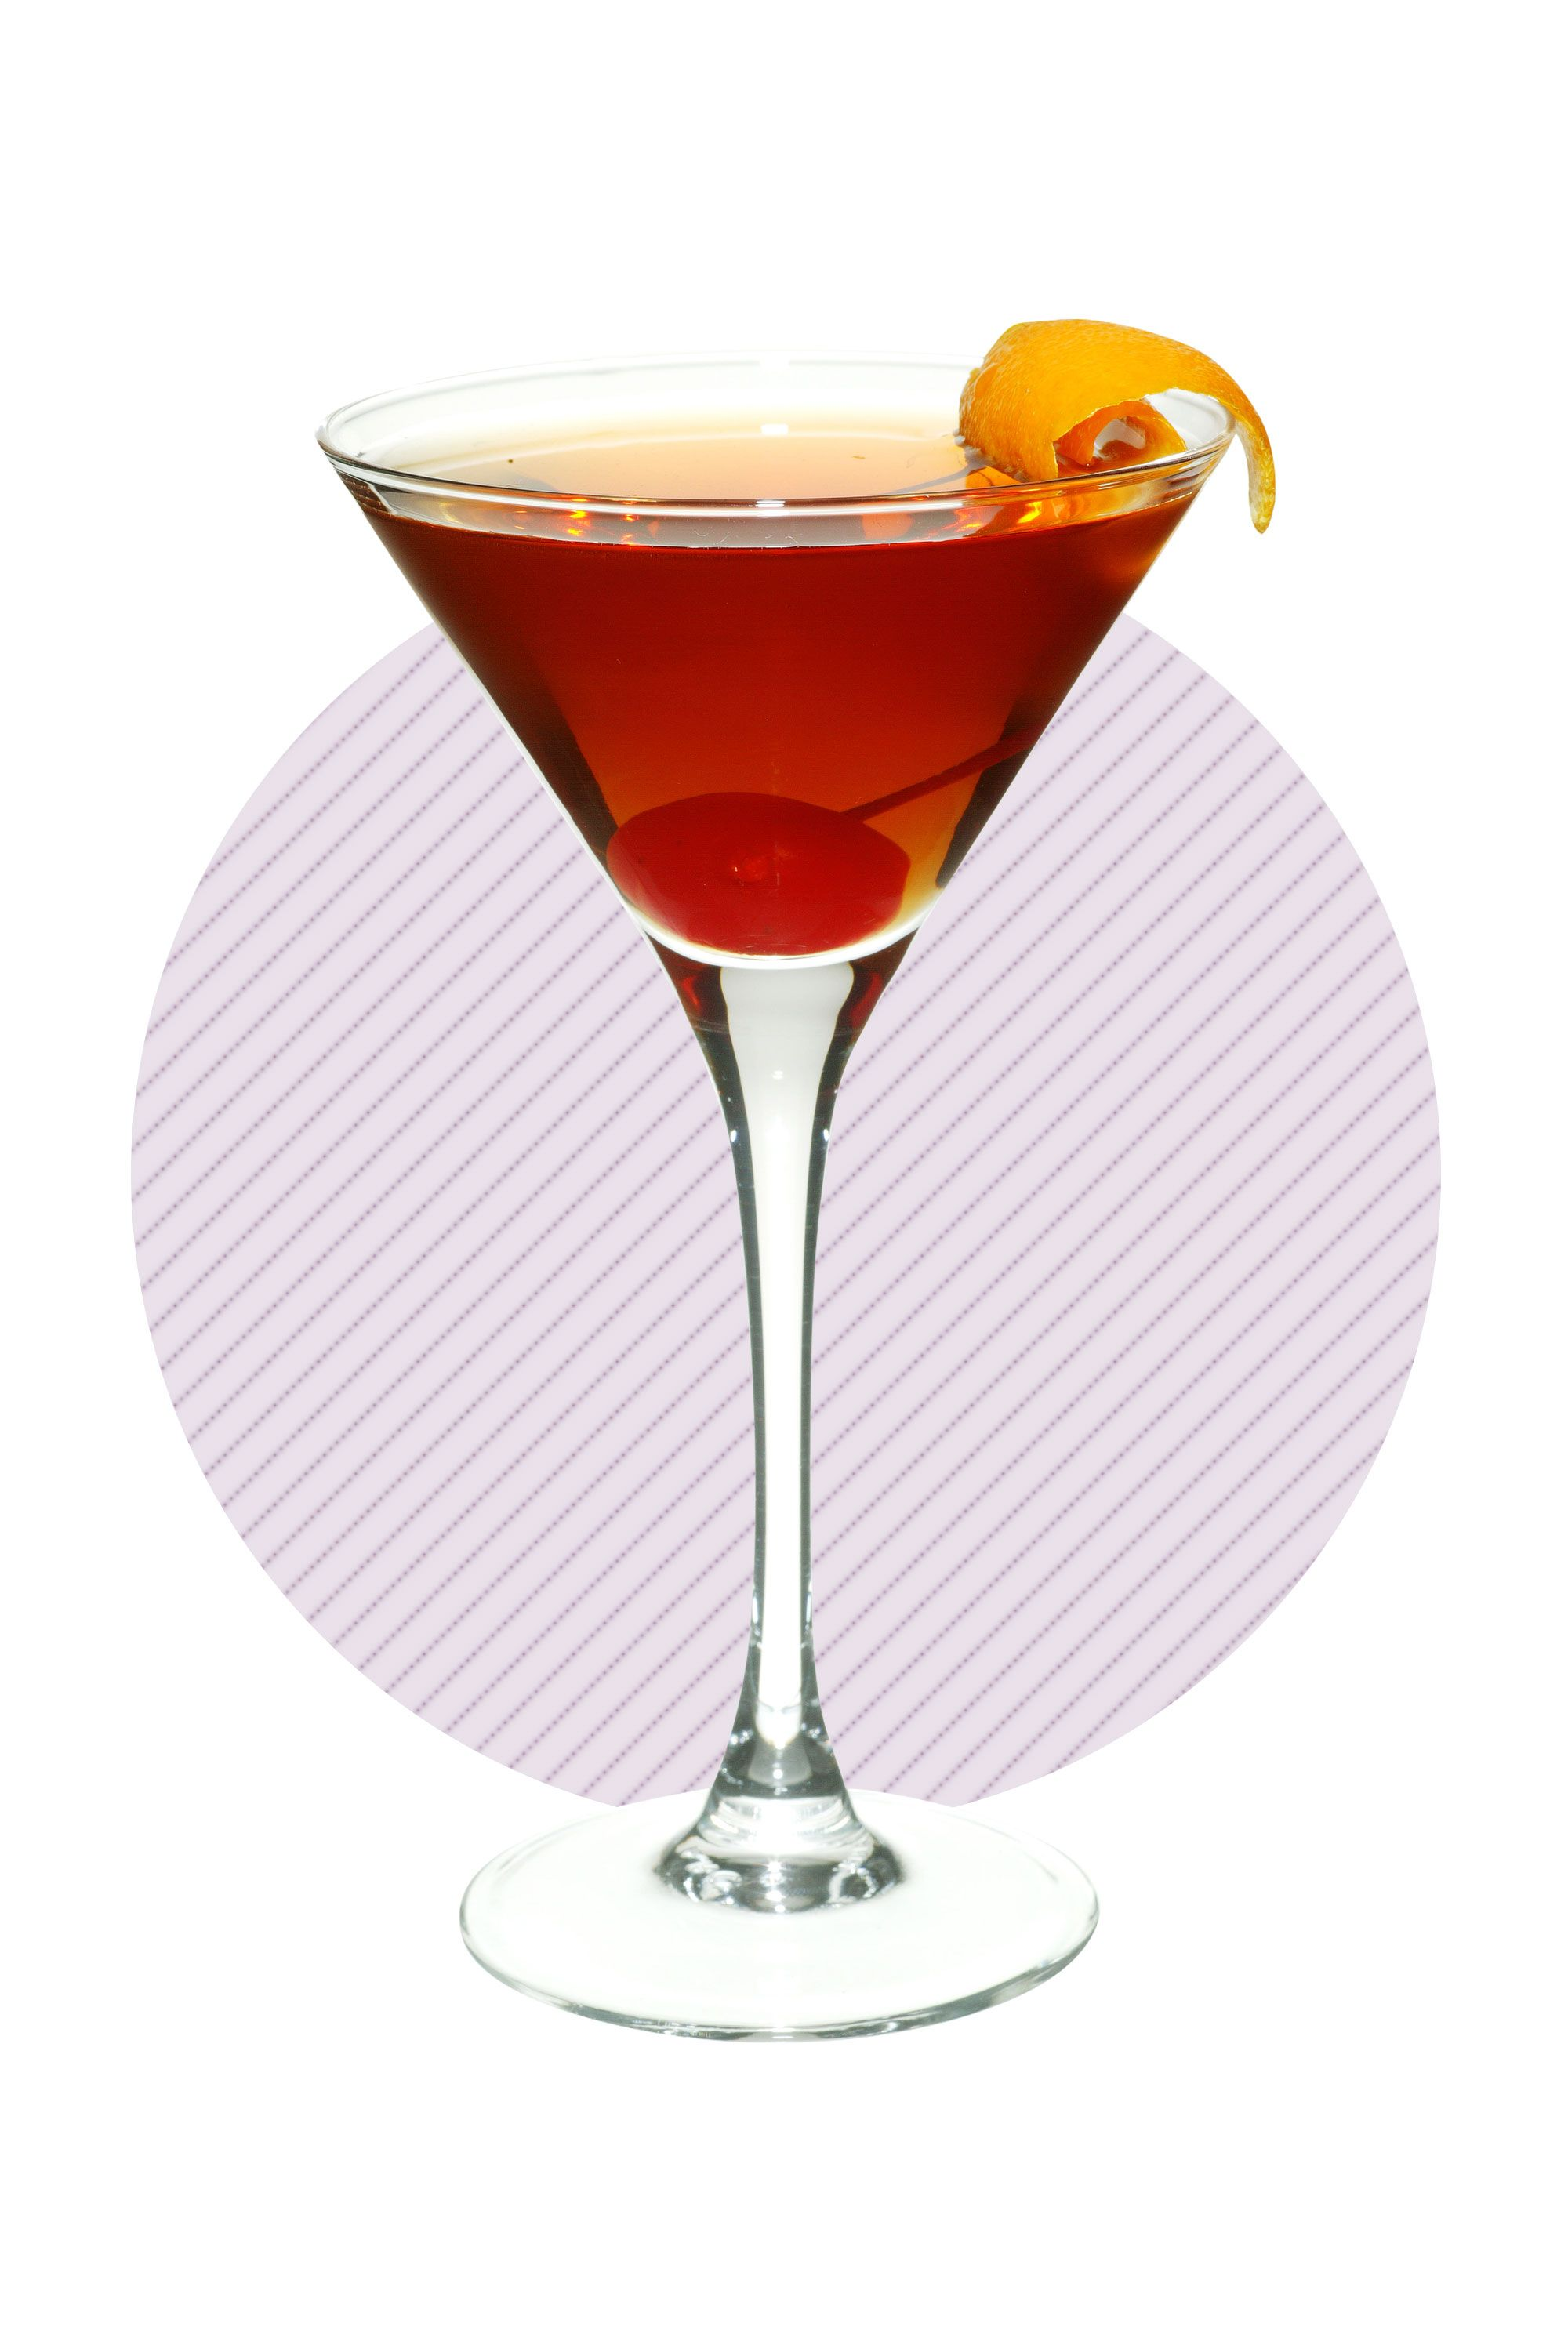 <p>Say no to the syrup-soaked maraschinos and replace the added sweetness with a smoky flavor by rinsing the glass with a quality scotch or whiskey. James says you'll be adding more intensity to the drink while simultaneously decreasing the cocktail's calorie count. </p>